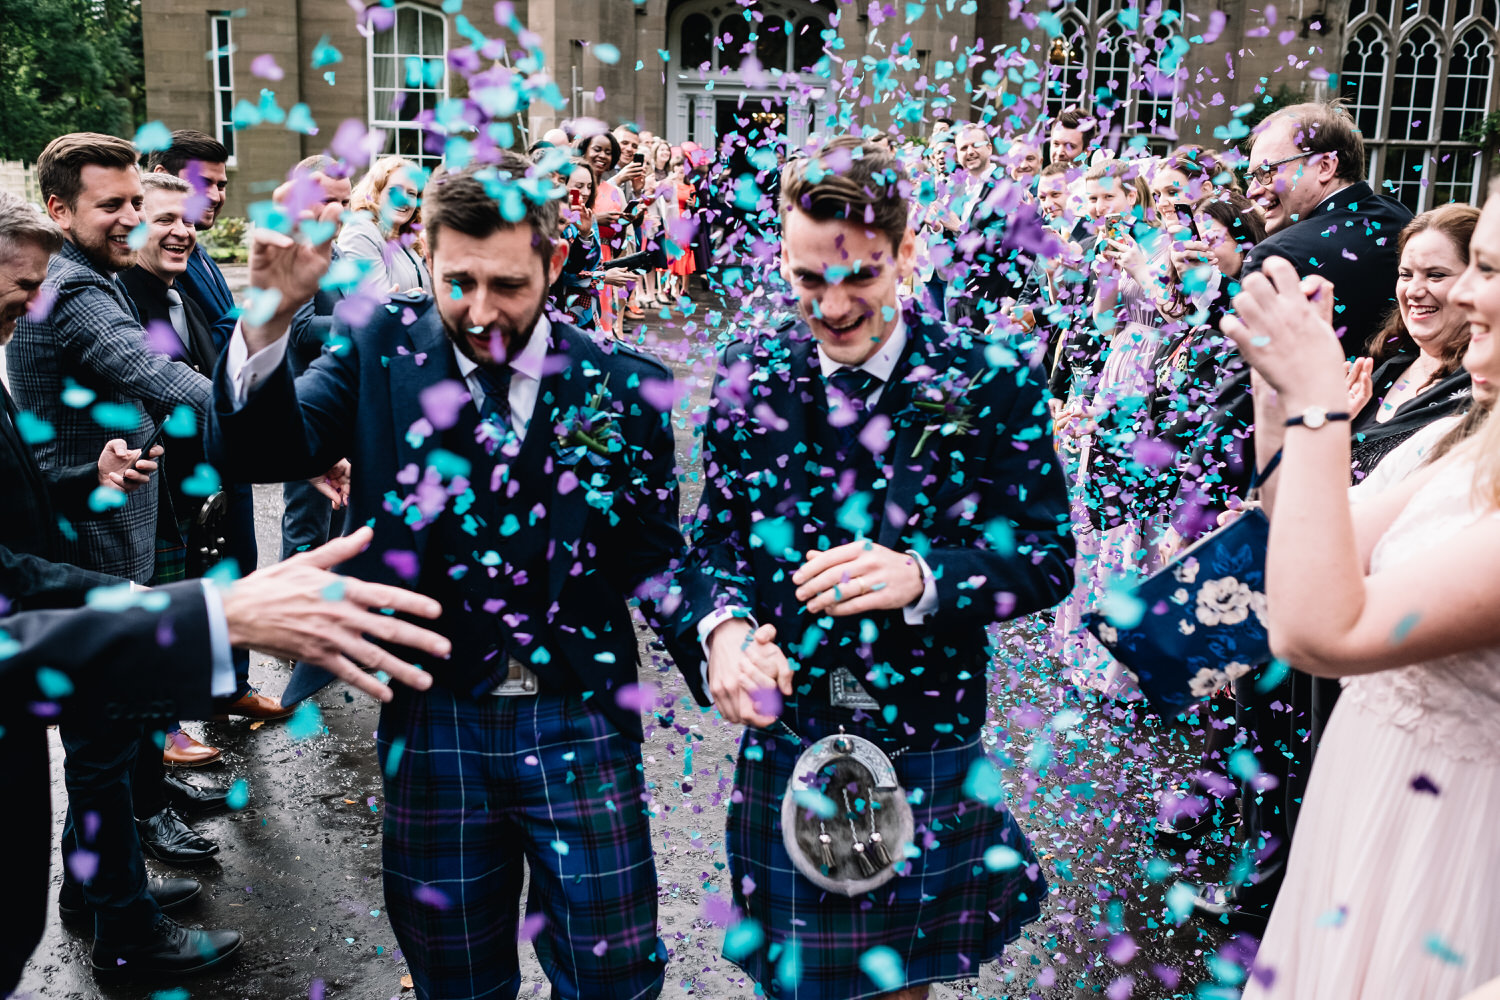 A couple laugh and run as they are showered with purple and blue confetti.